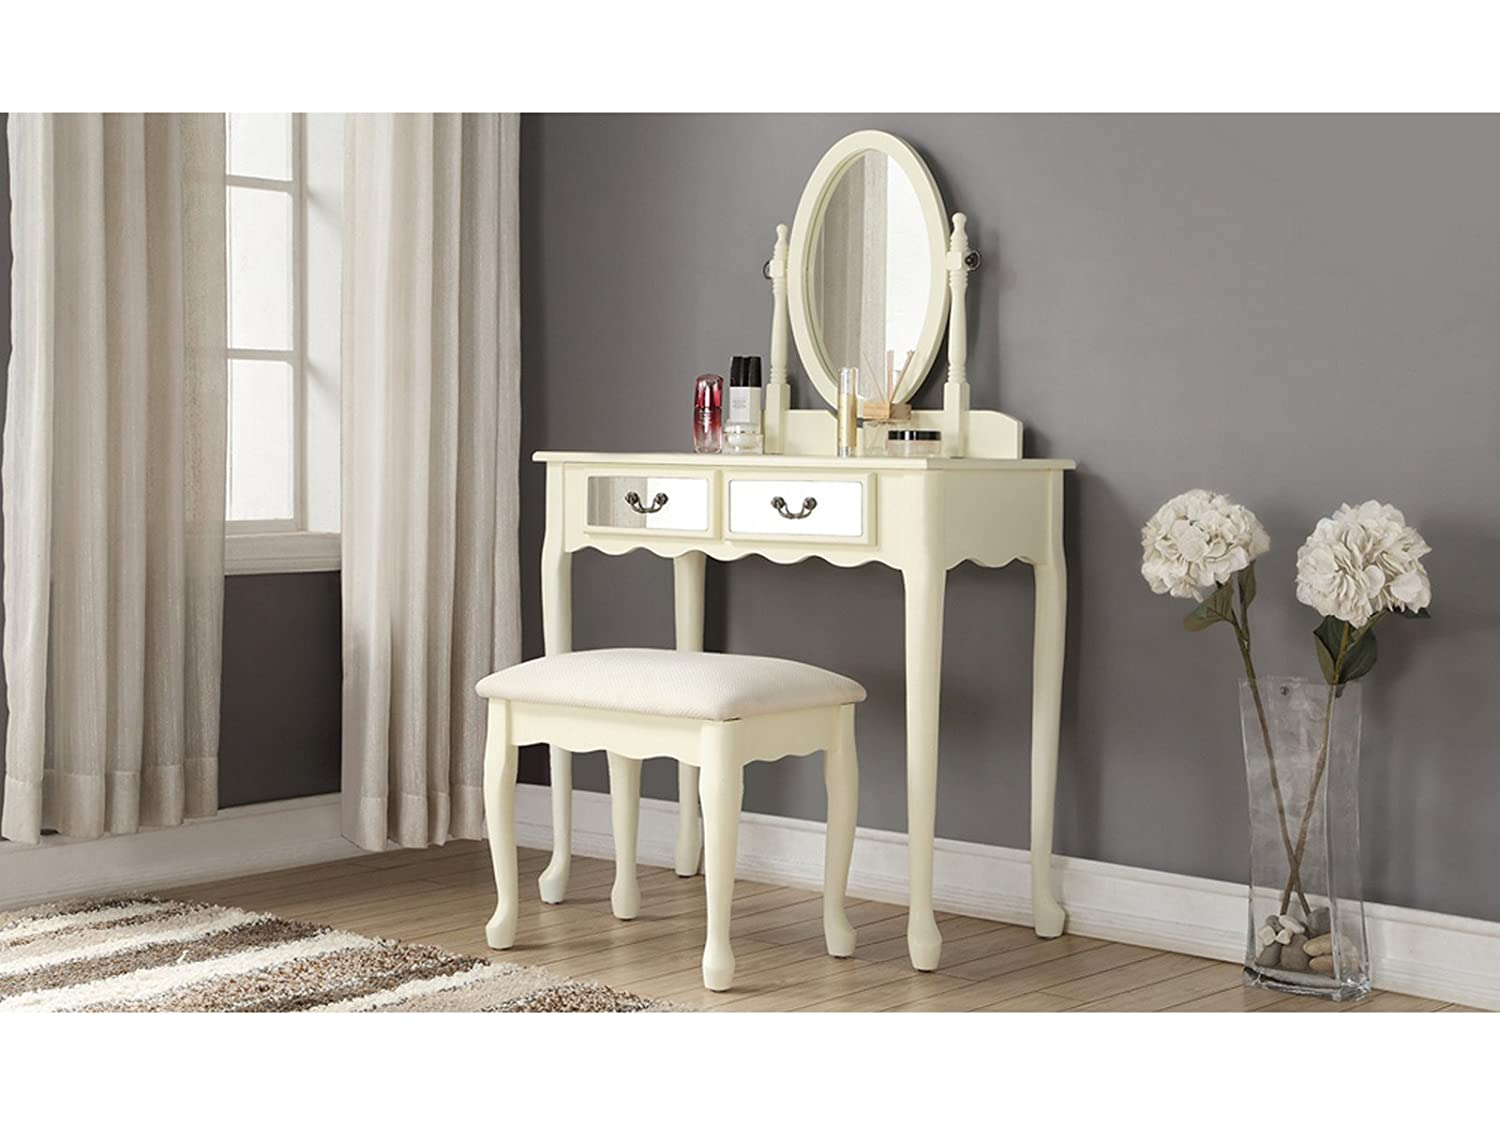 Traditional Design Mirrored Vanity Dressing Table Set With Soft Curved Legs & Stool - Ivory GFW - The Furniture Warehouse